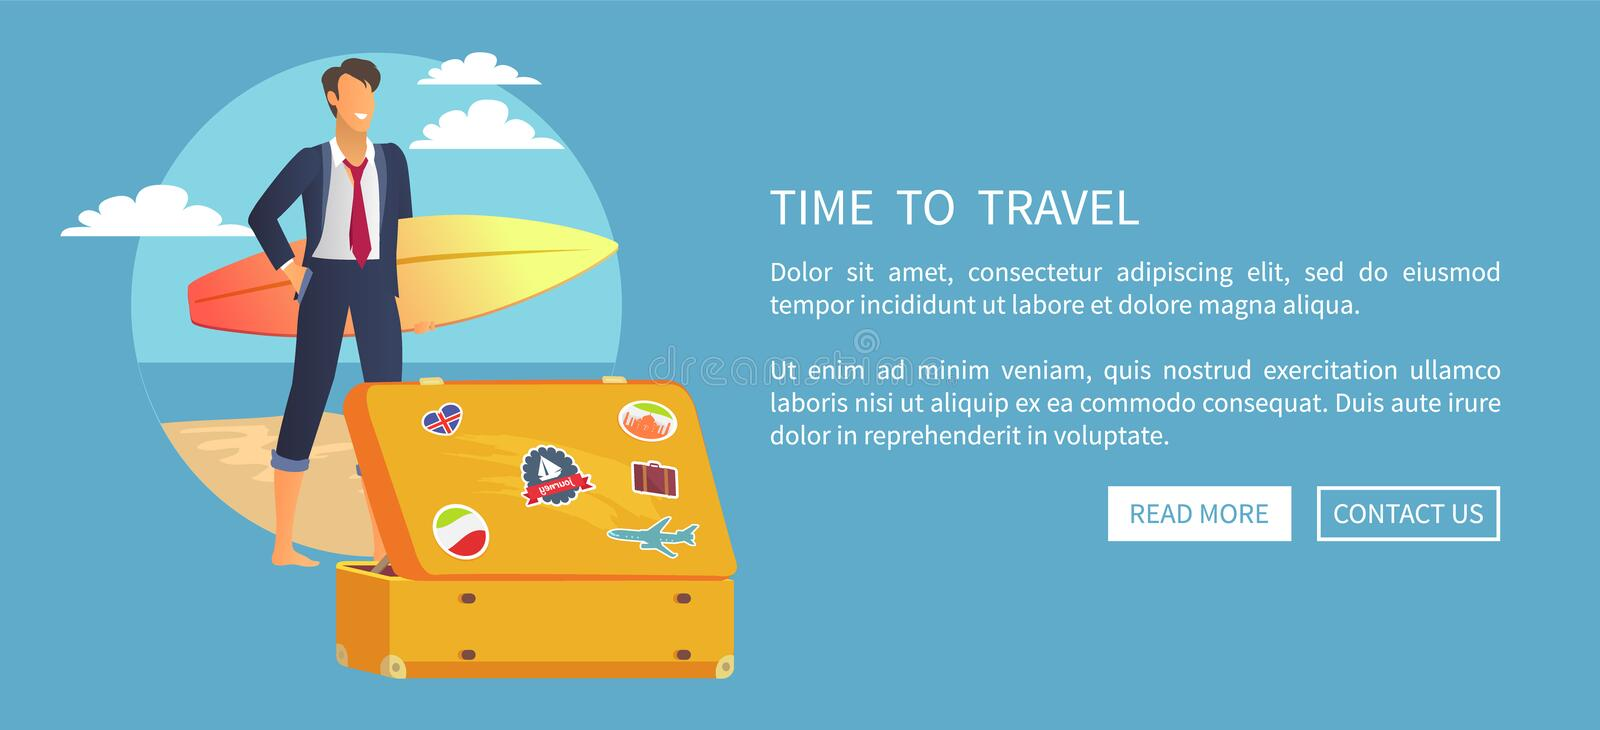 Time to Travel Web Poster Push Buttons Read More royalty free illustration